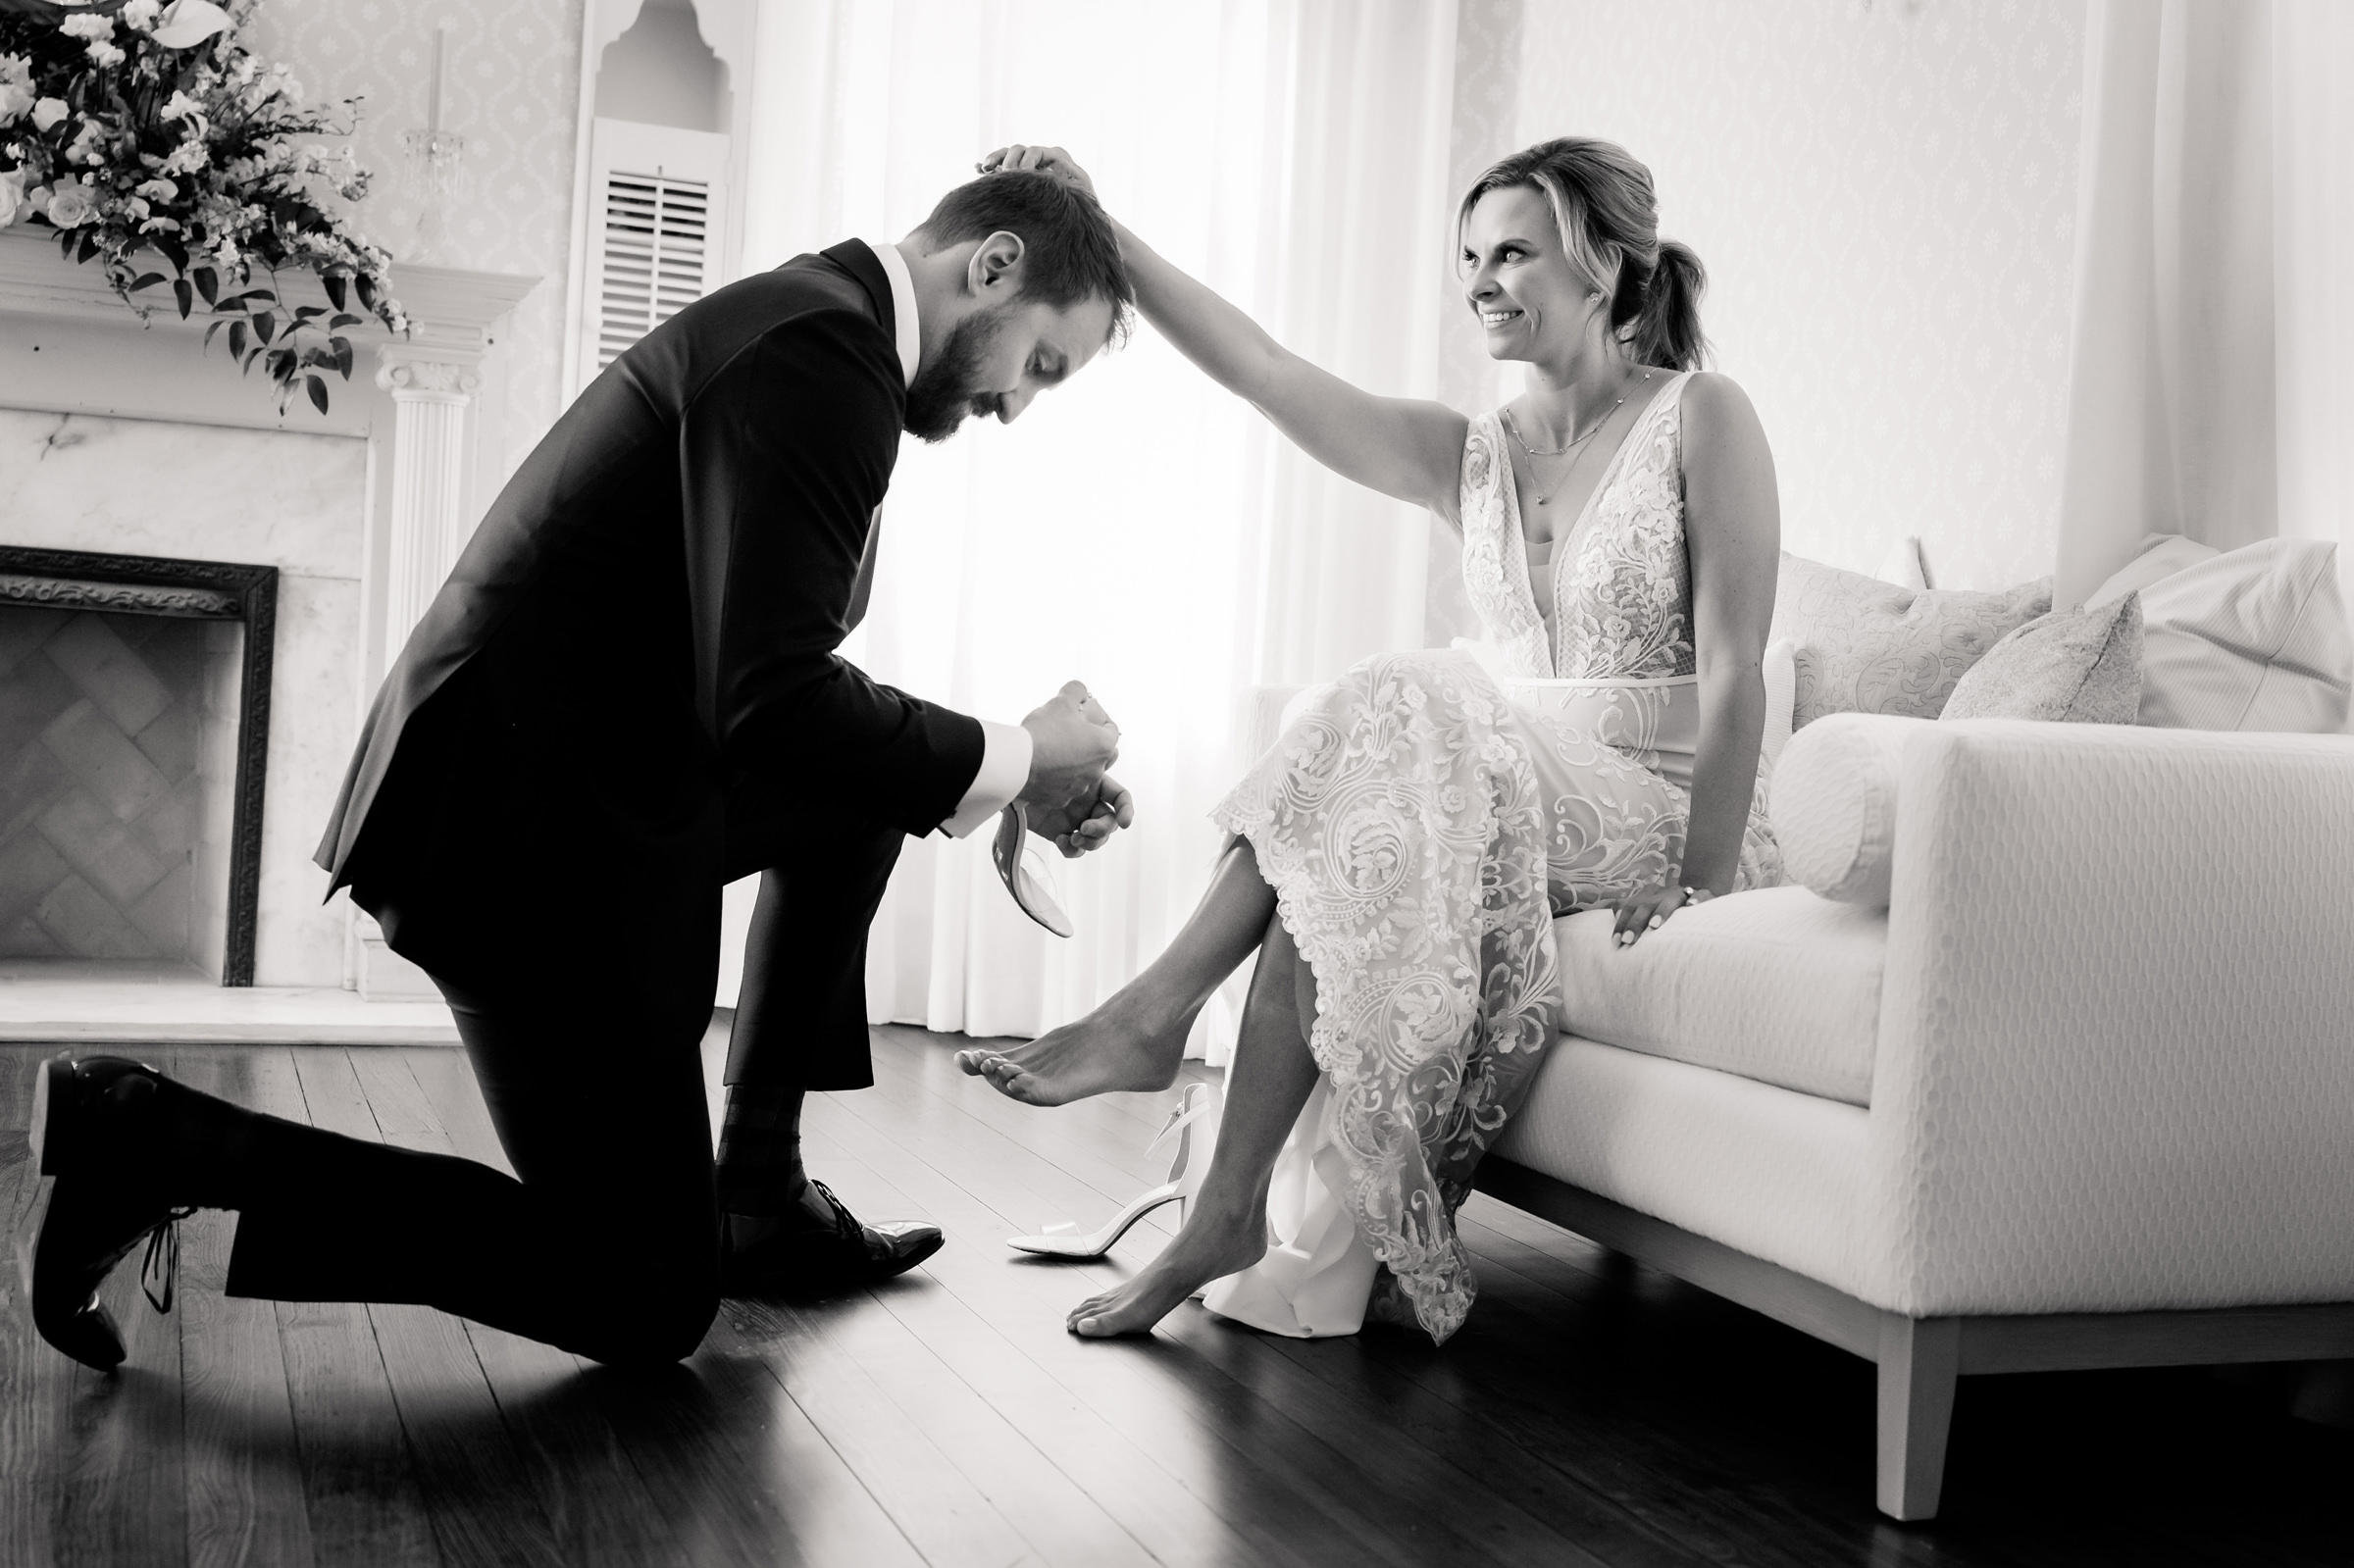 Groom kneeling with brides shoe - photo by Jenny DeMarco Photography